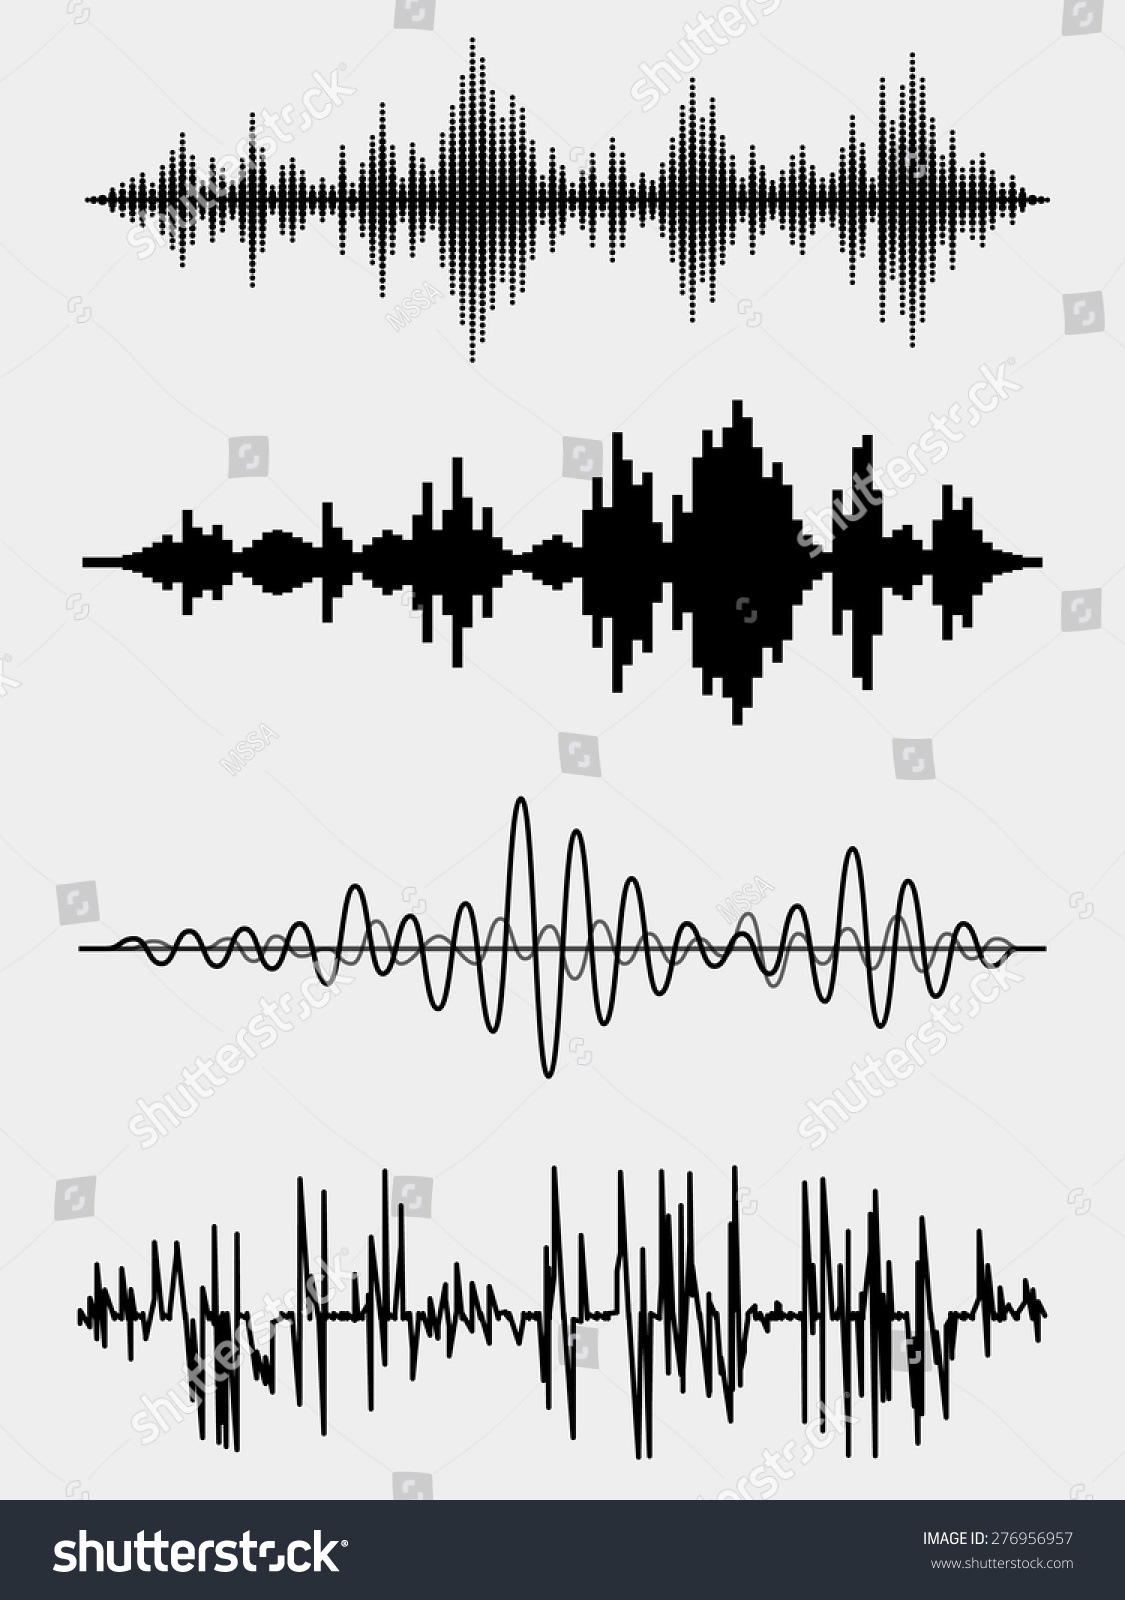 Acoustic Sound Waves : Vector sound waves set audio equalizer stock